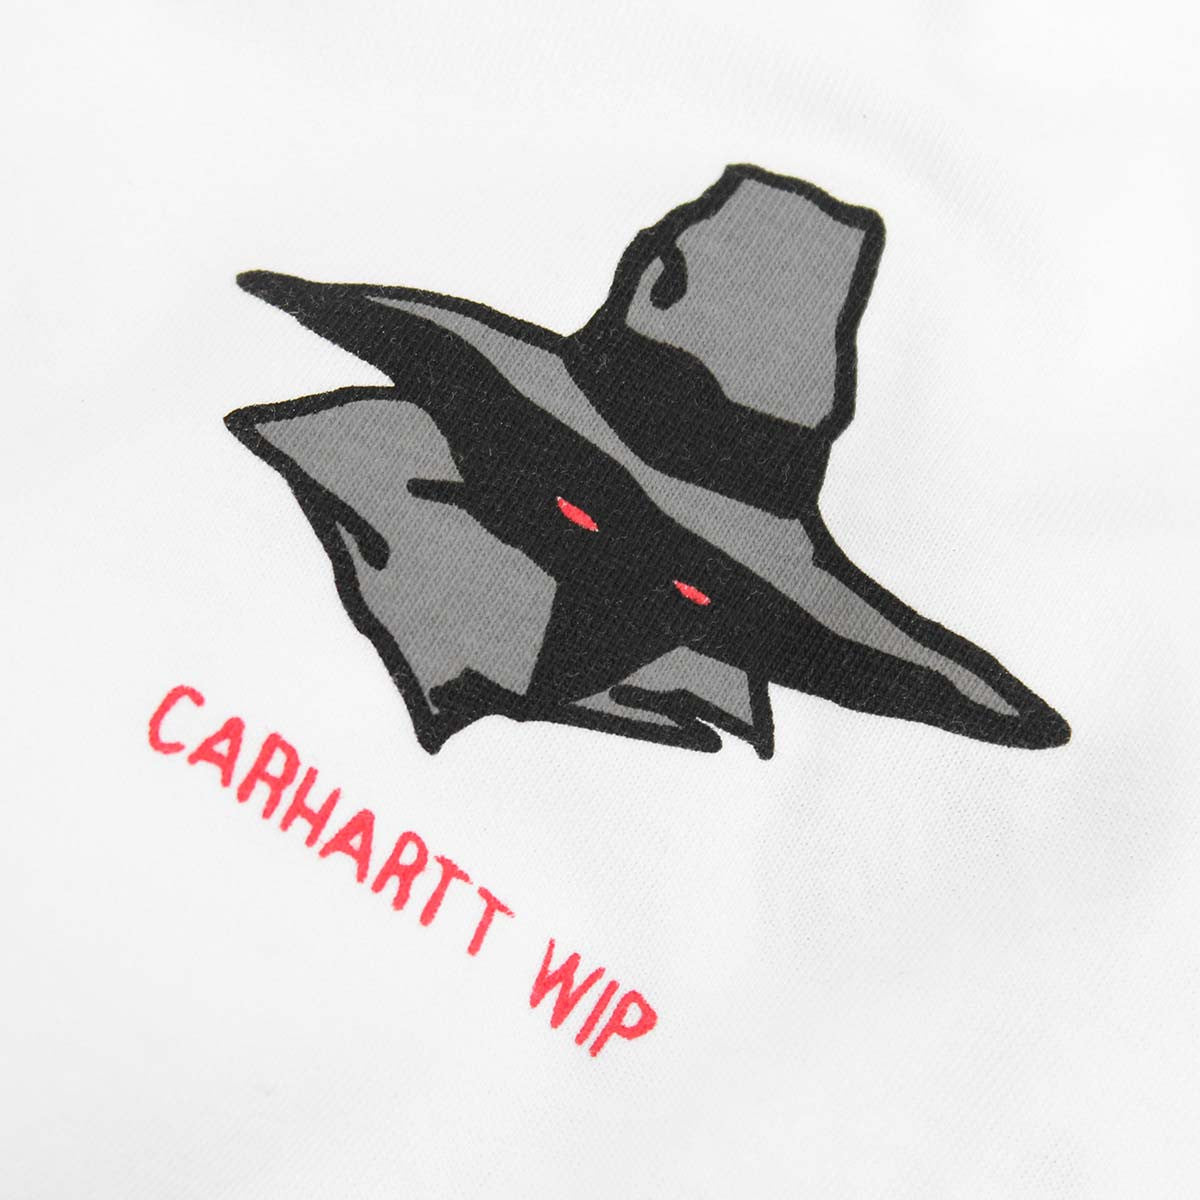 Carhartt WIP Never Before T-Shirt